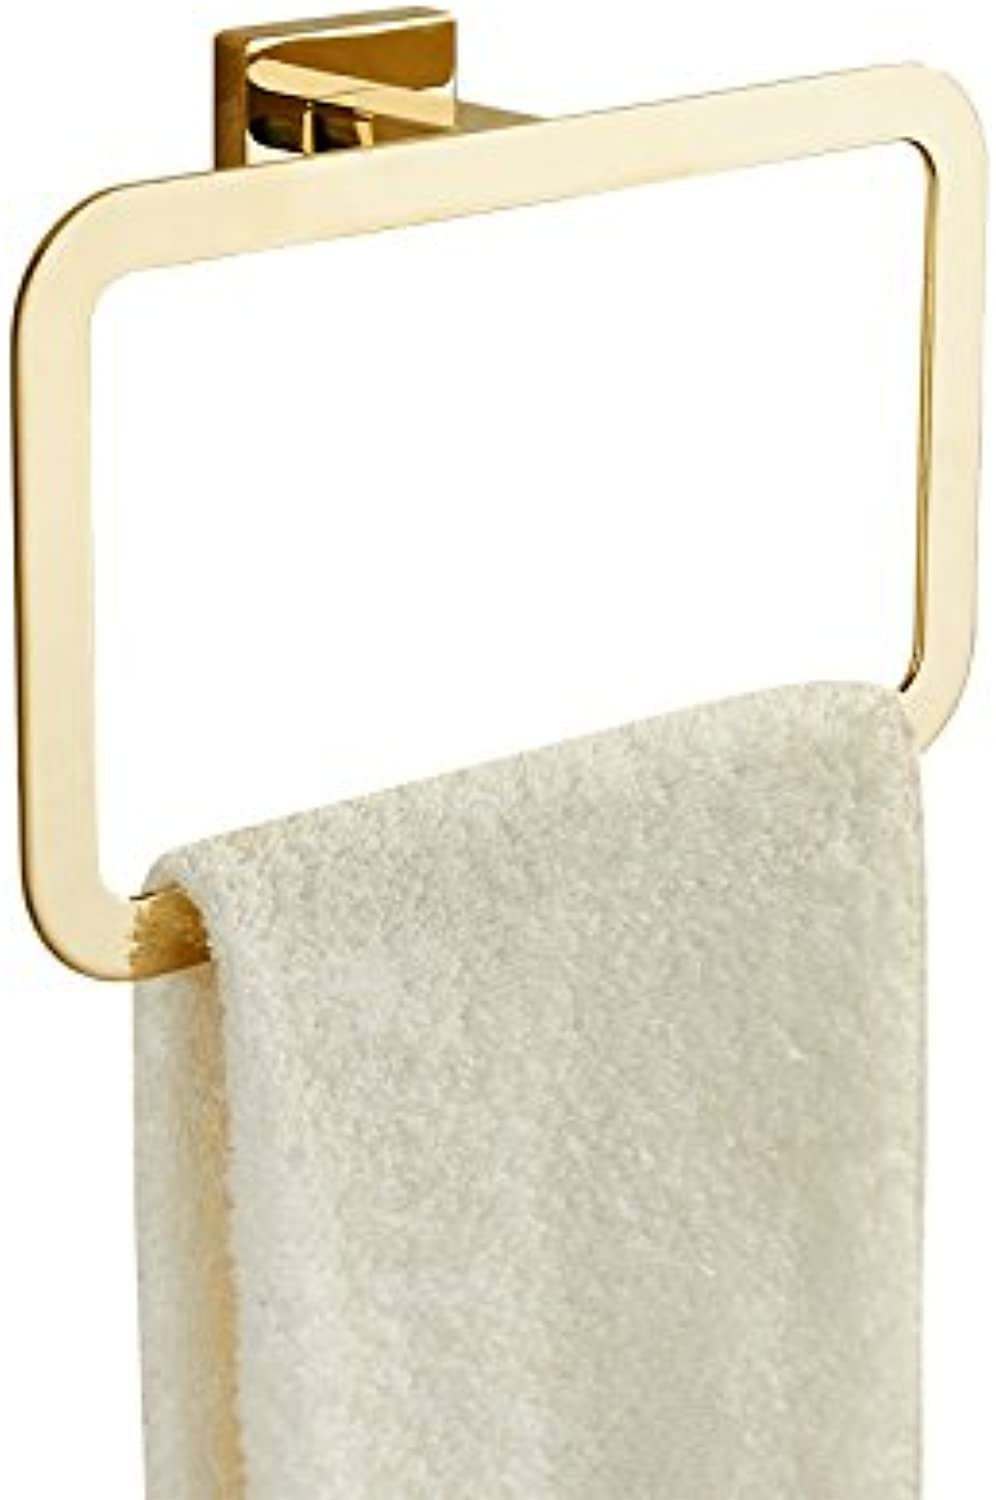 Hardwareh Towel Ring, Stainless Steel, Hao gold Towel Hanging Ring Toilet Hardware Pendantmodern Simple and Durable Home Decoration Classic Quality Assurance